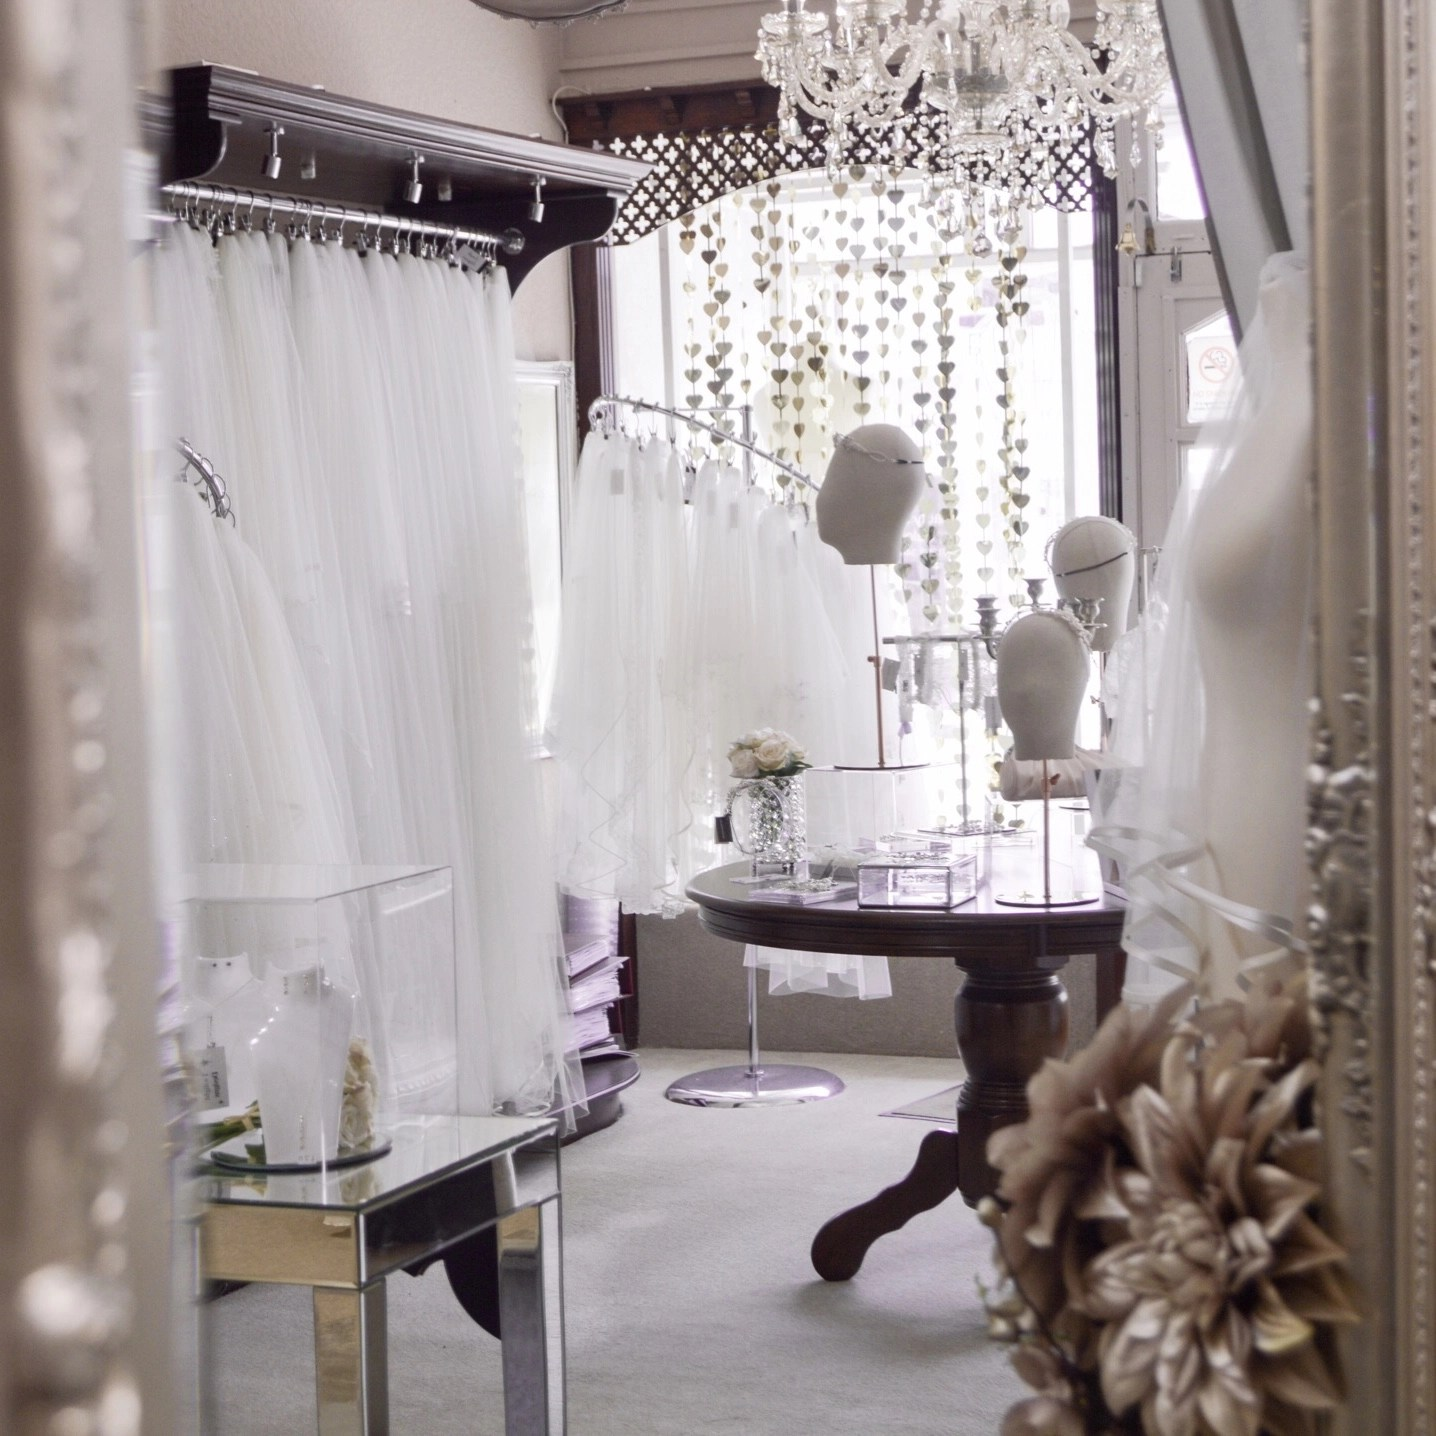 Taylors Bridal Boutique Blackpool - Inside The Wedding Veil Shop Online